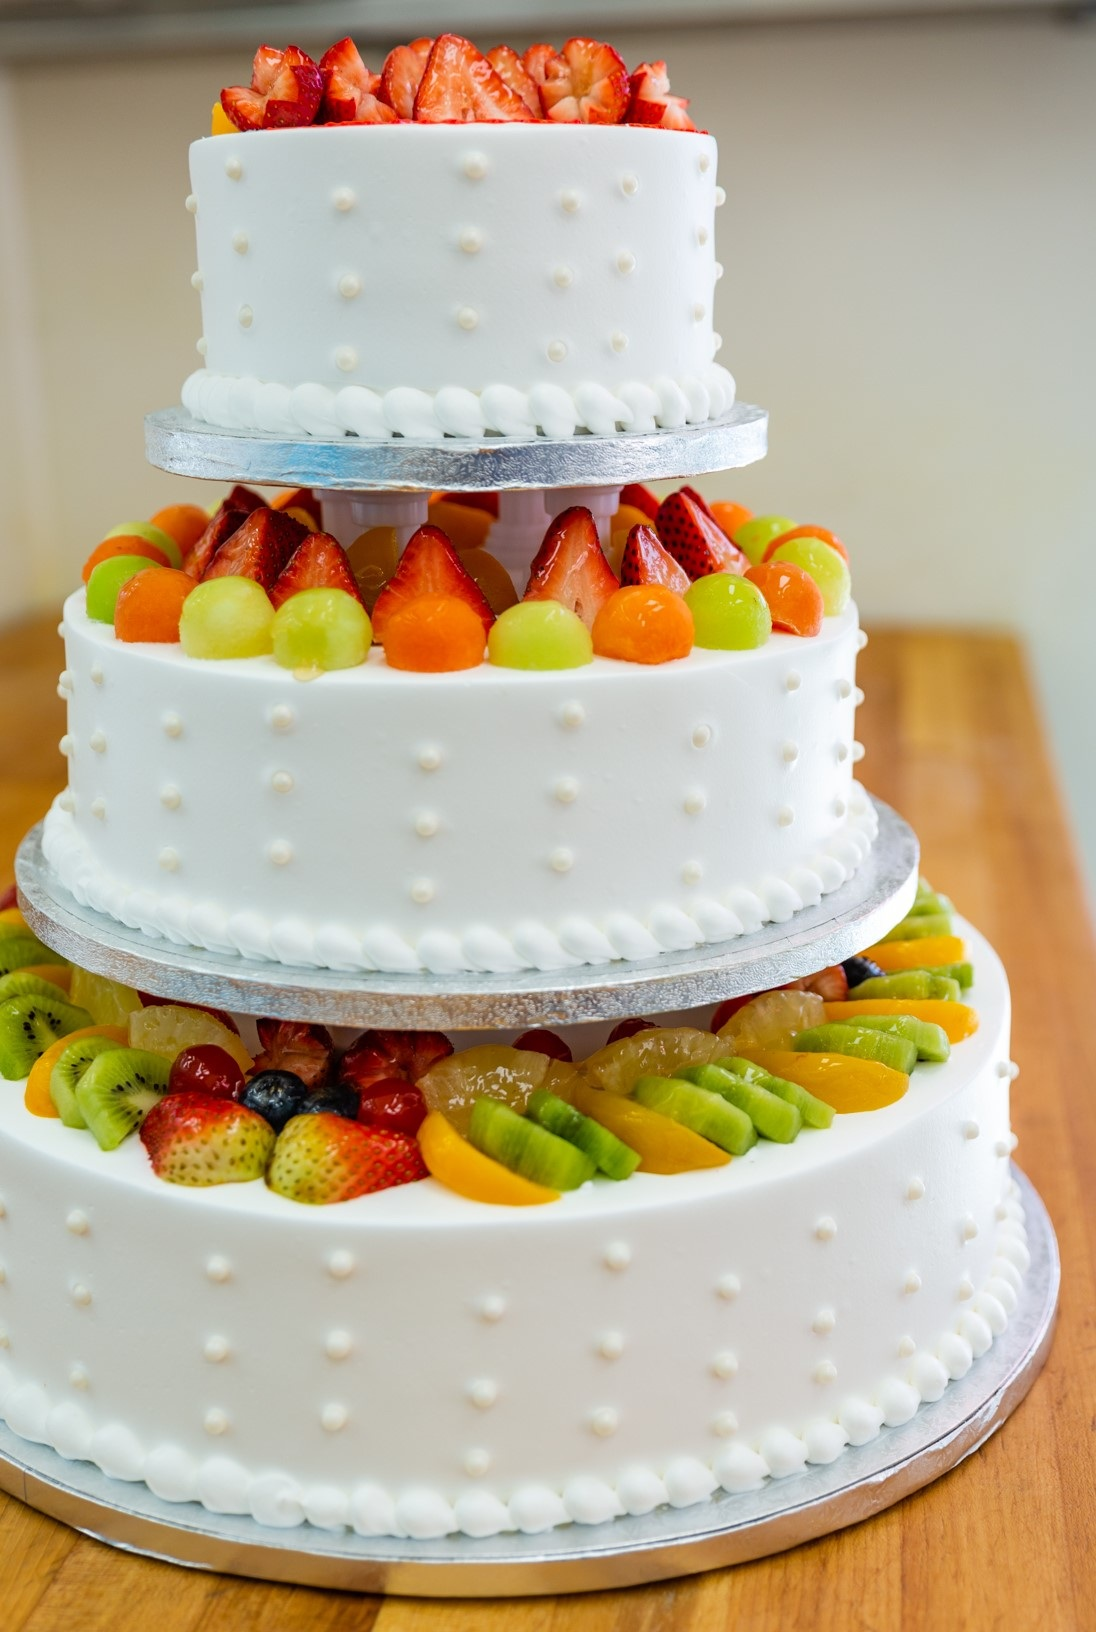 W9 - 3 layered cake decorated with mix fruits